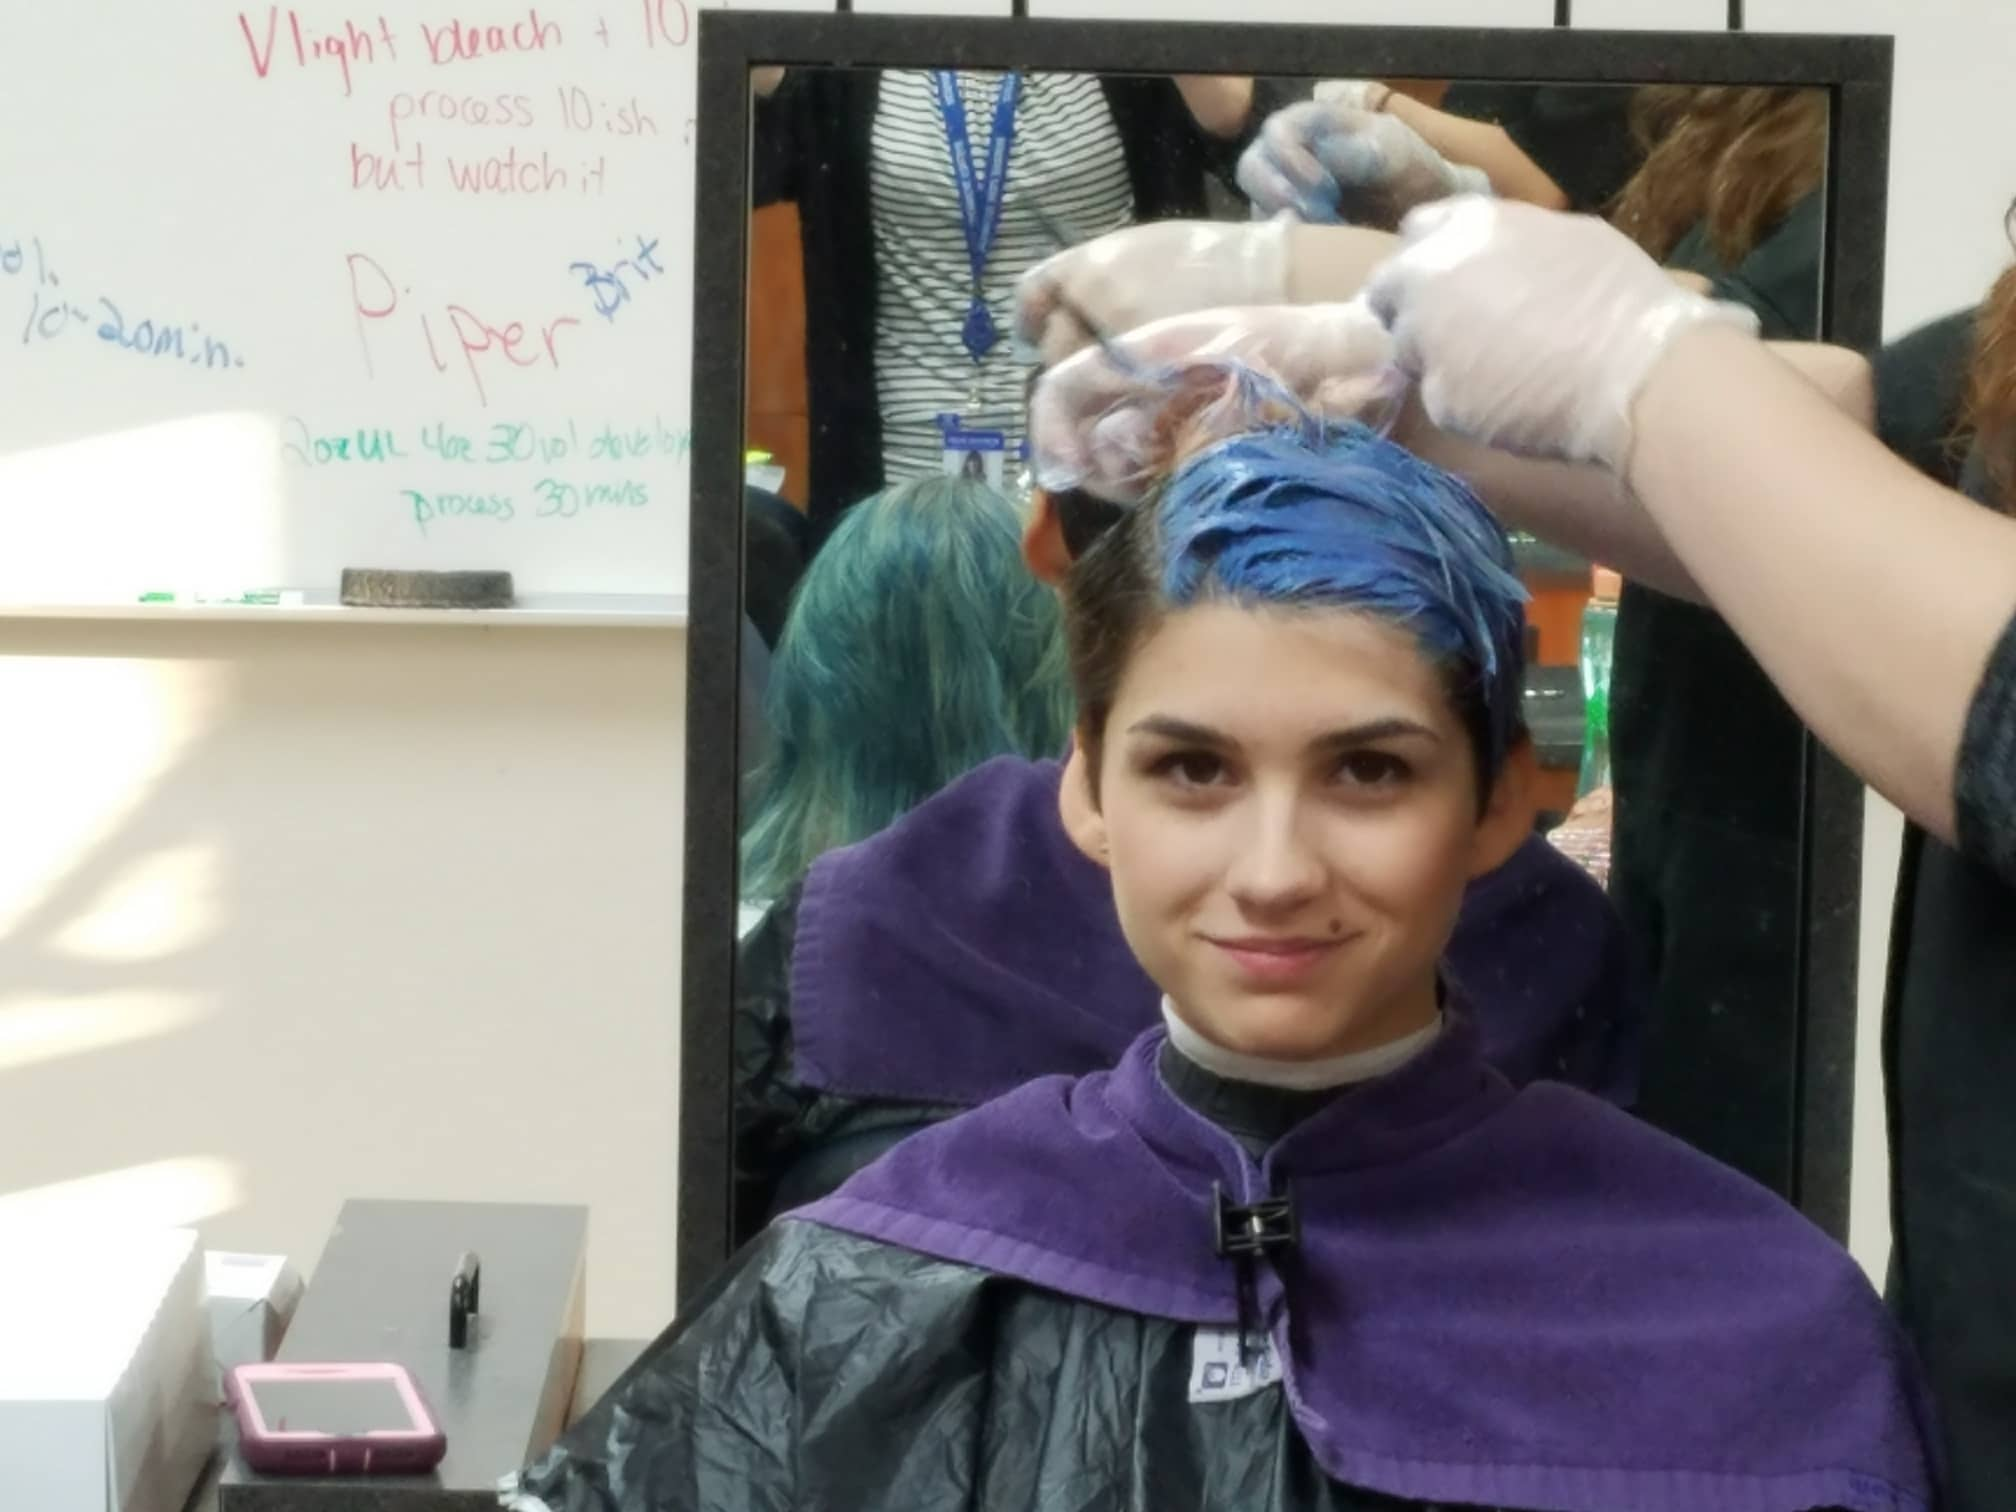 MPTC Cosmo students applying color to other students